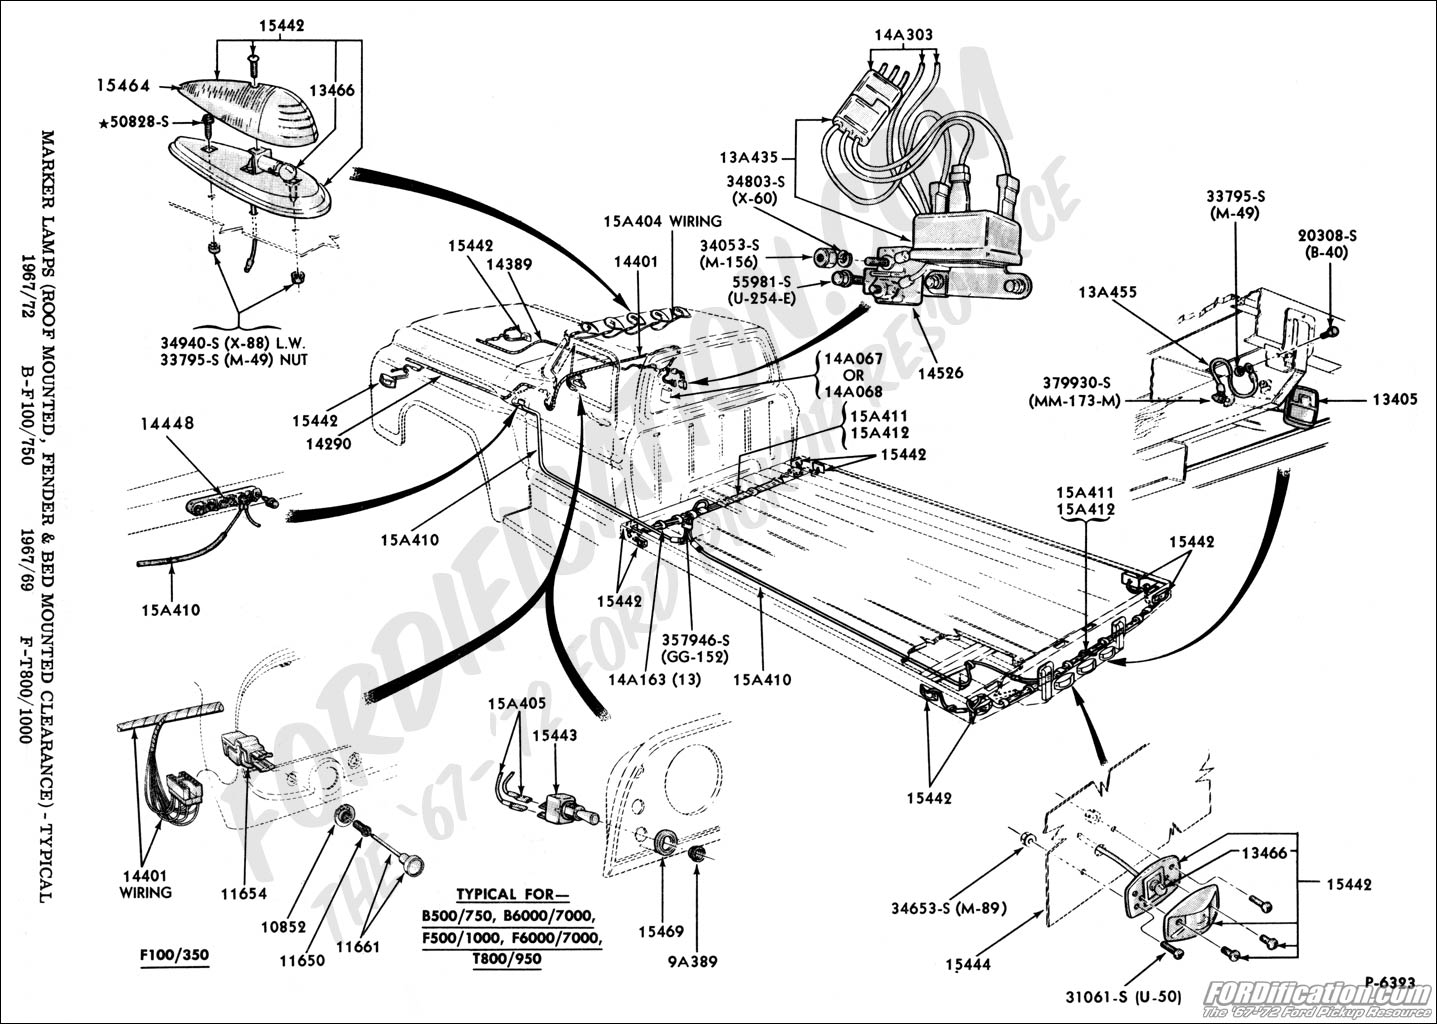 hight resolution of ford truck technical drawings and schematics section i 1968 f100 steering column wiring diagram 1968 ford